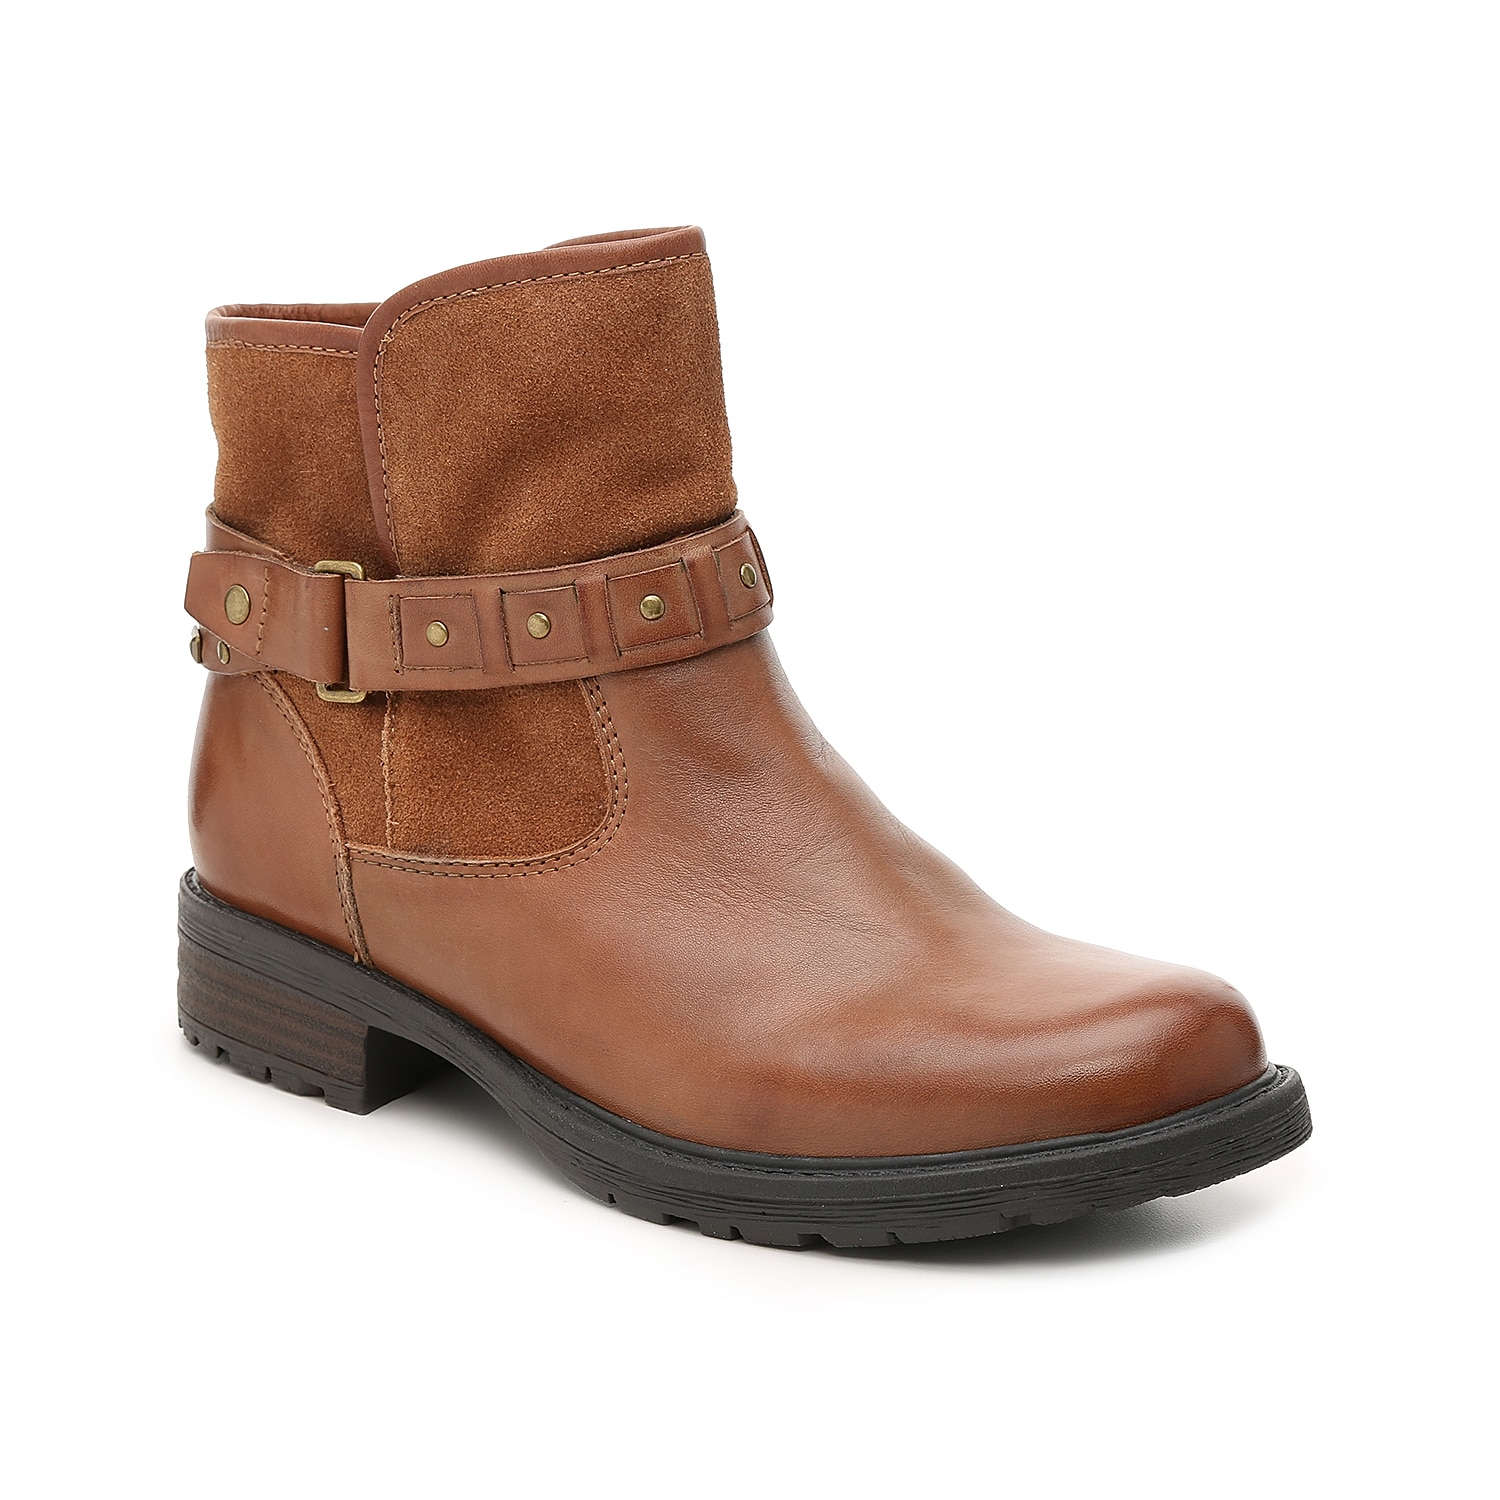 Cozy, comfortable, and stylish: the Artistic Onyx bootie from Earth has it all. A faux sherpa lining and energizingPowerpath® footbed keeps you feeling your best while the studded harness strap adds a touch of edge to this ankle boot.Click here for Boot Measuring Guide.